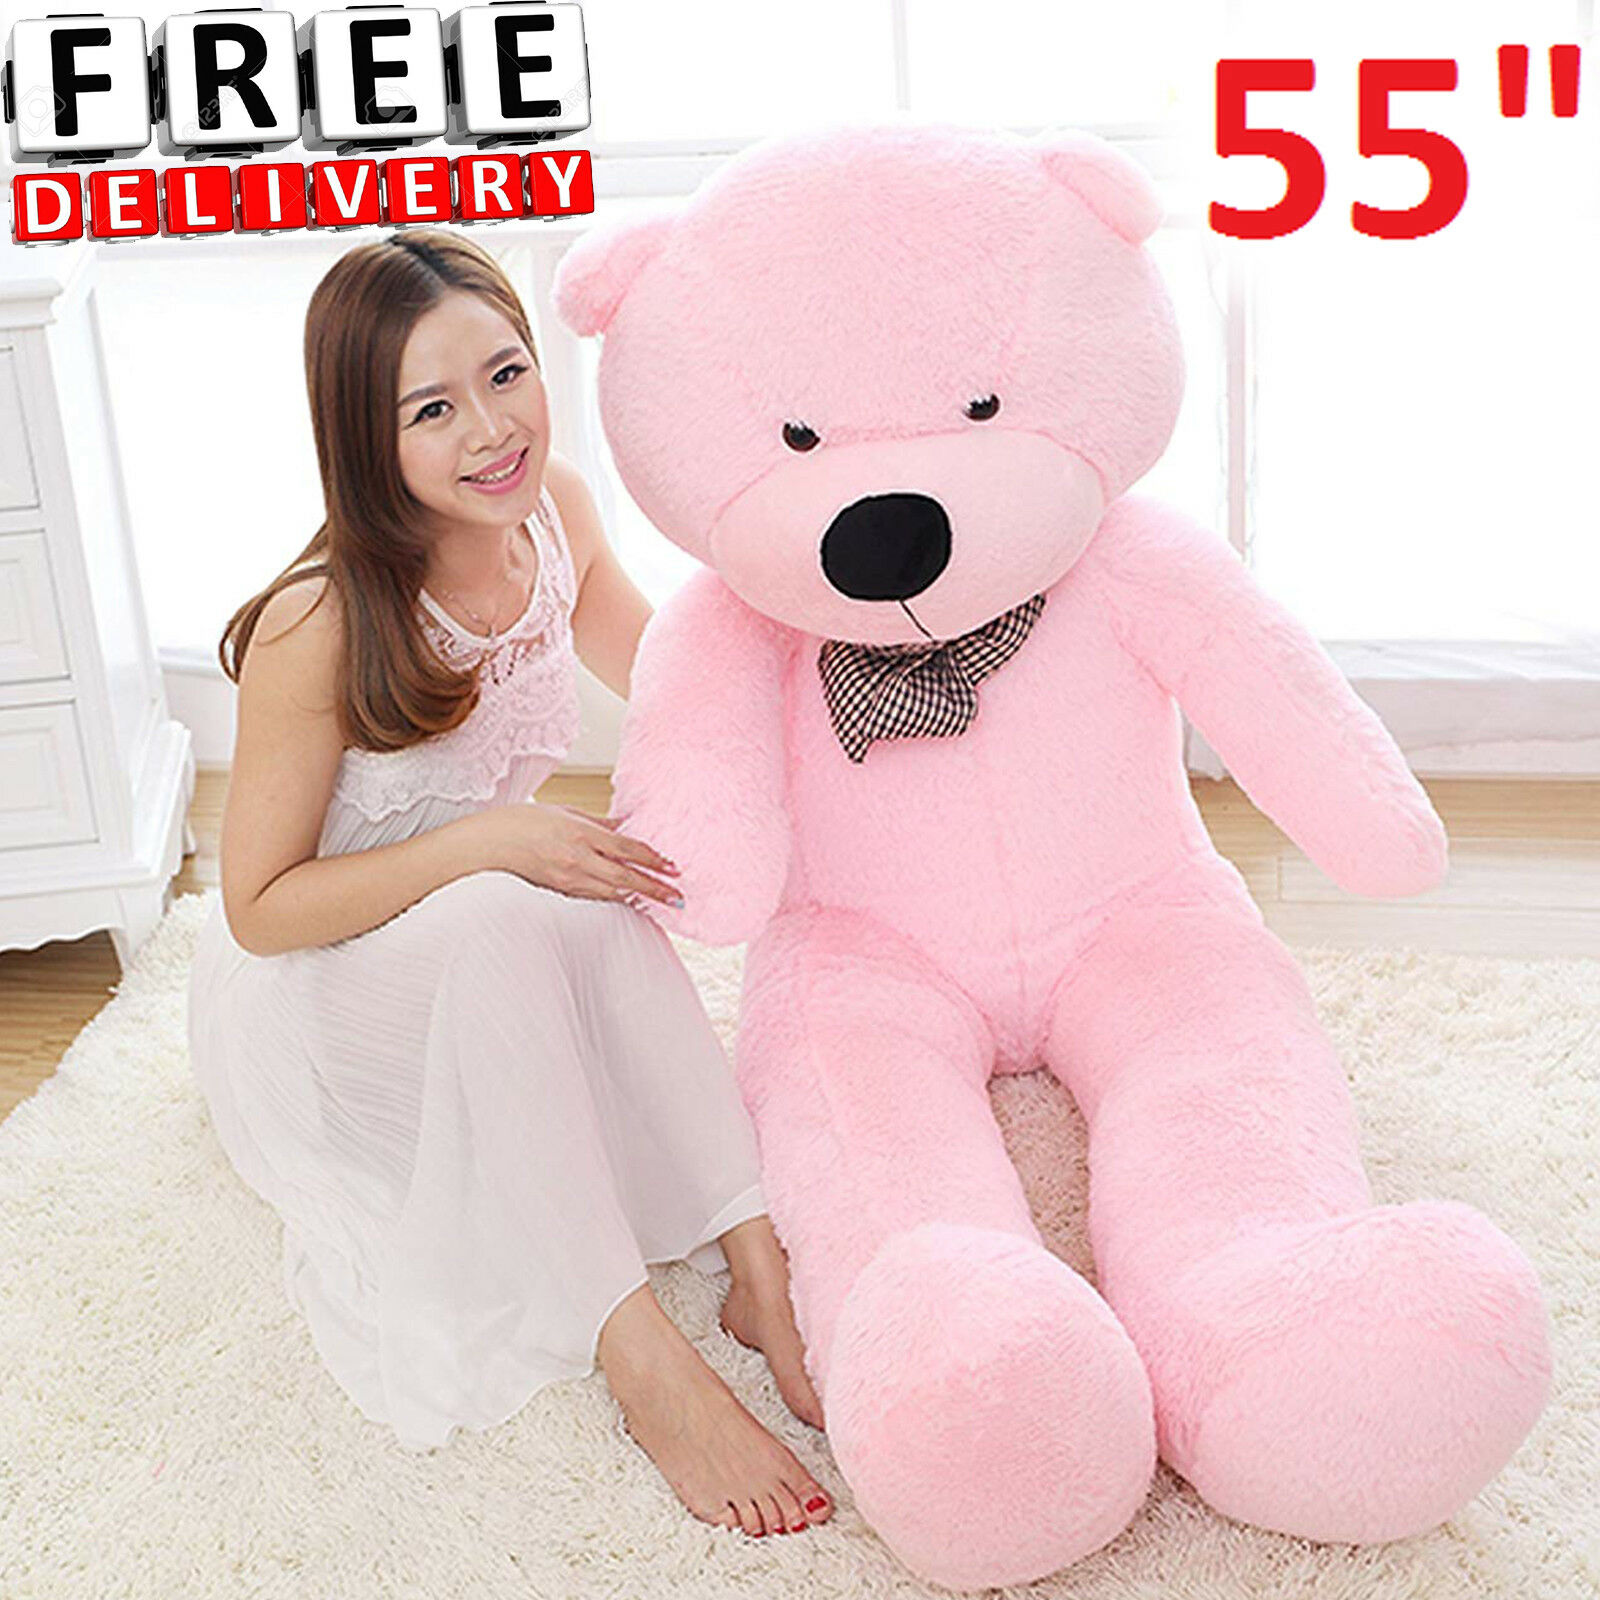 Giant Plush Teddy Bear 55  Pink Stuffed Animal Soft Toy Huge Large Jumbo Gift